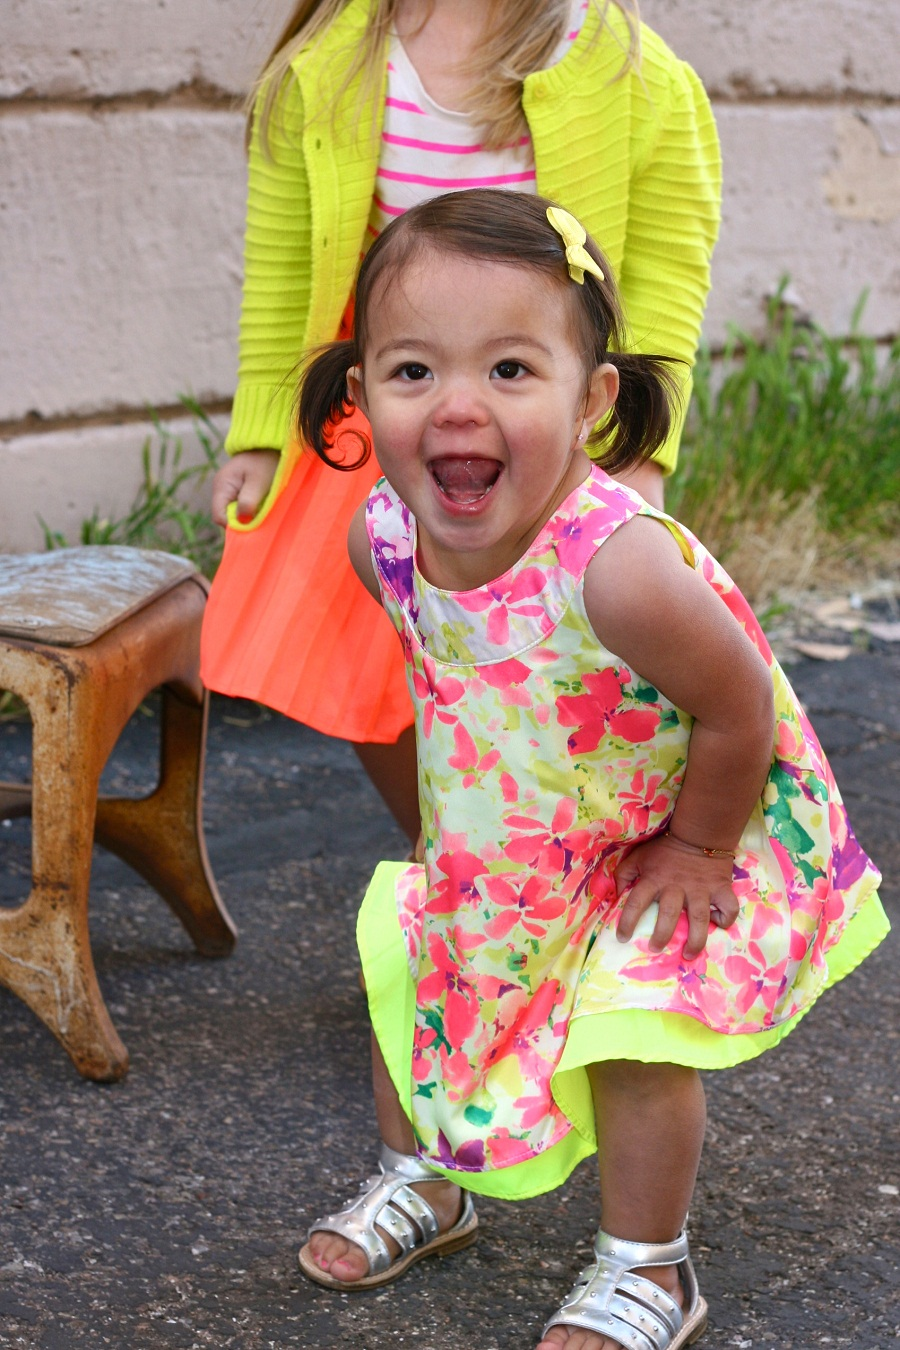 Little Girls Are The Cutest The Girl In The Yellow Dress